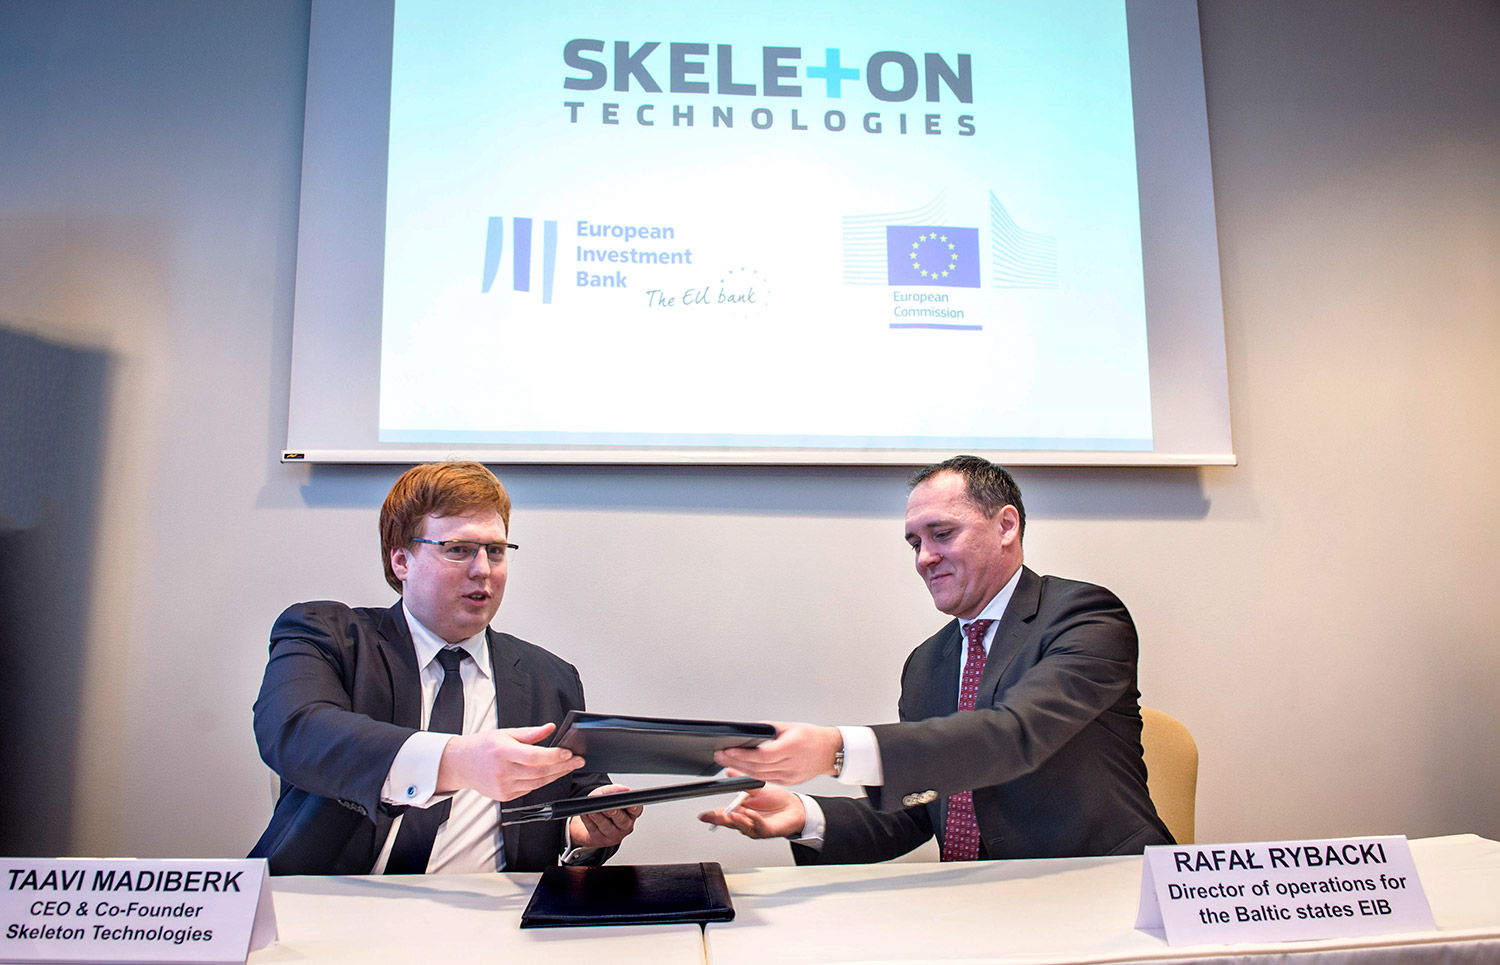 Skeleton Technologies Sign an Investment Loan Agreement for 15 Million Euros with the EIB